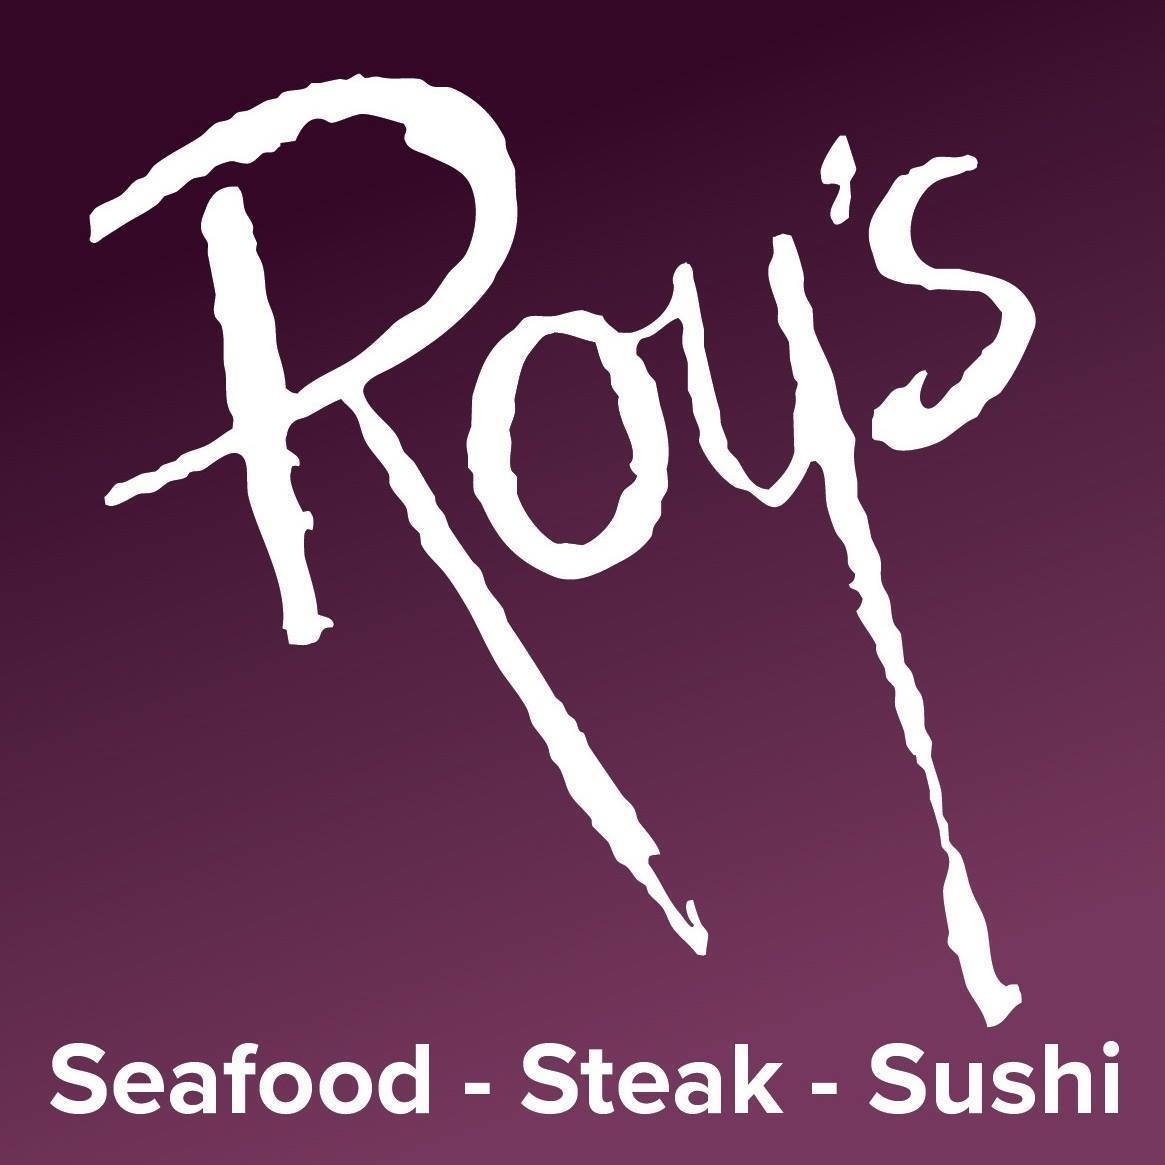 Roy's Hawaiian Fusion Cuisine – San Francisco